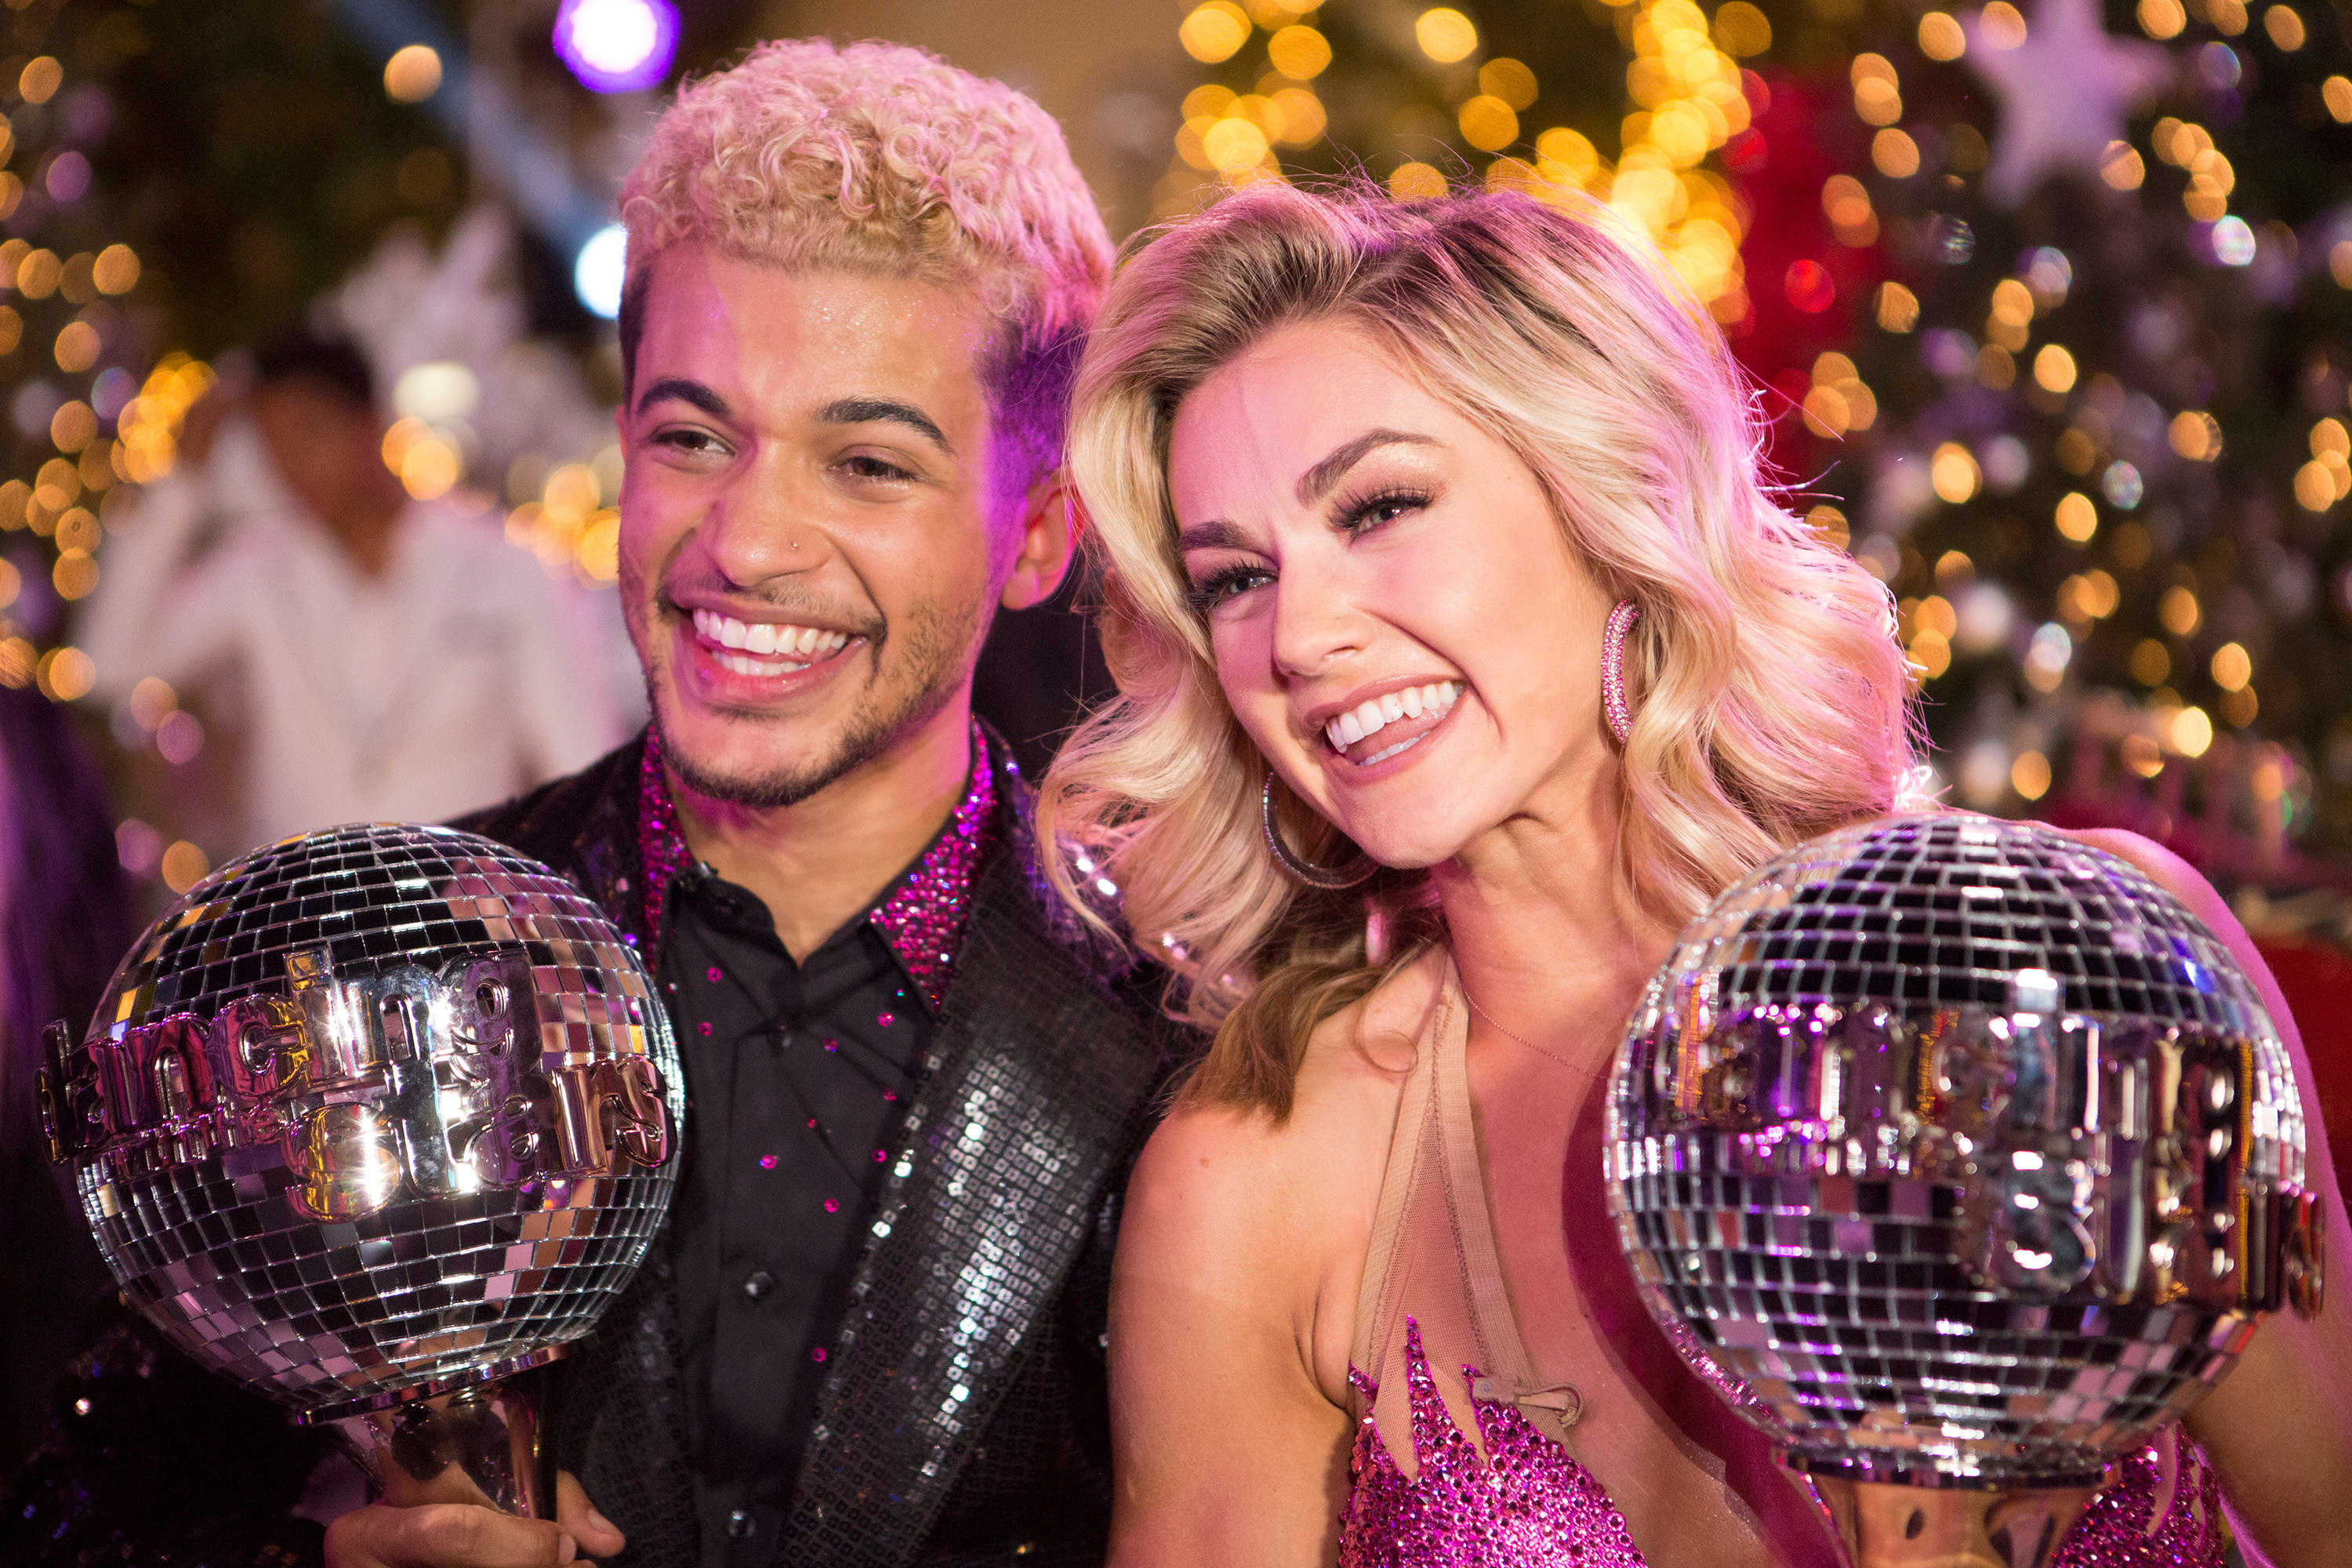 dancing with the stars finale jordan fisher obviously wins the